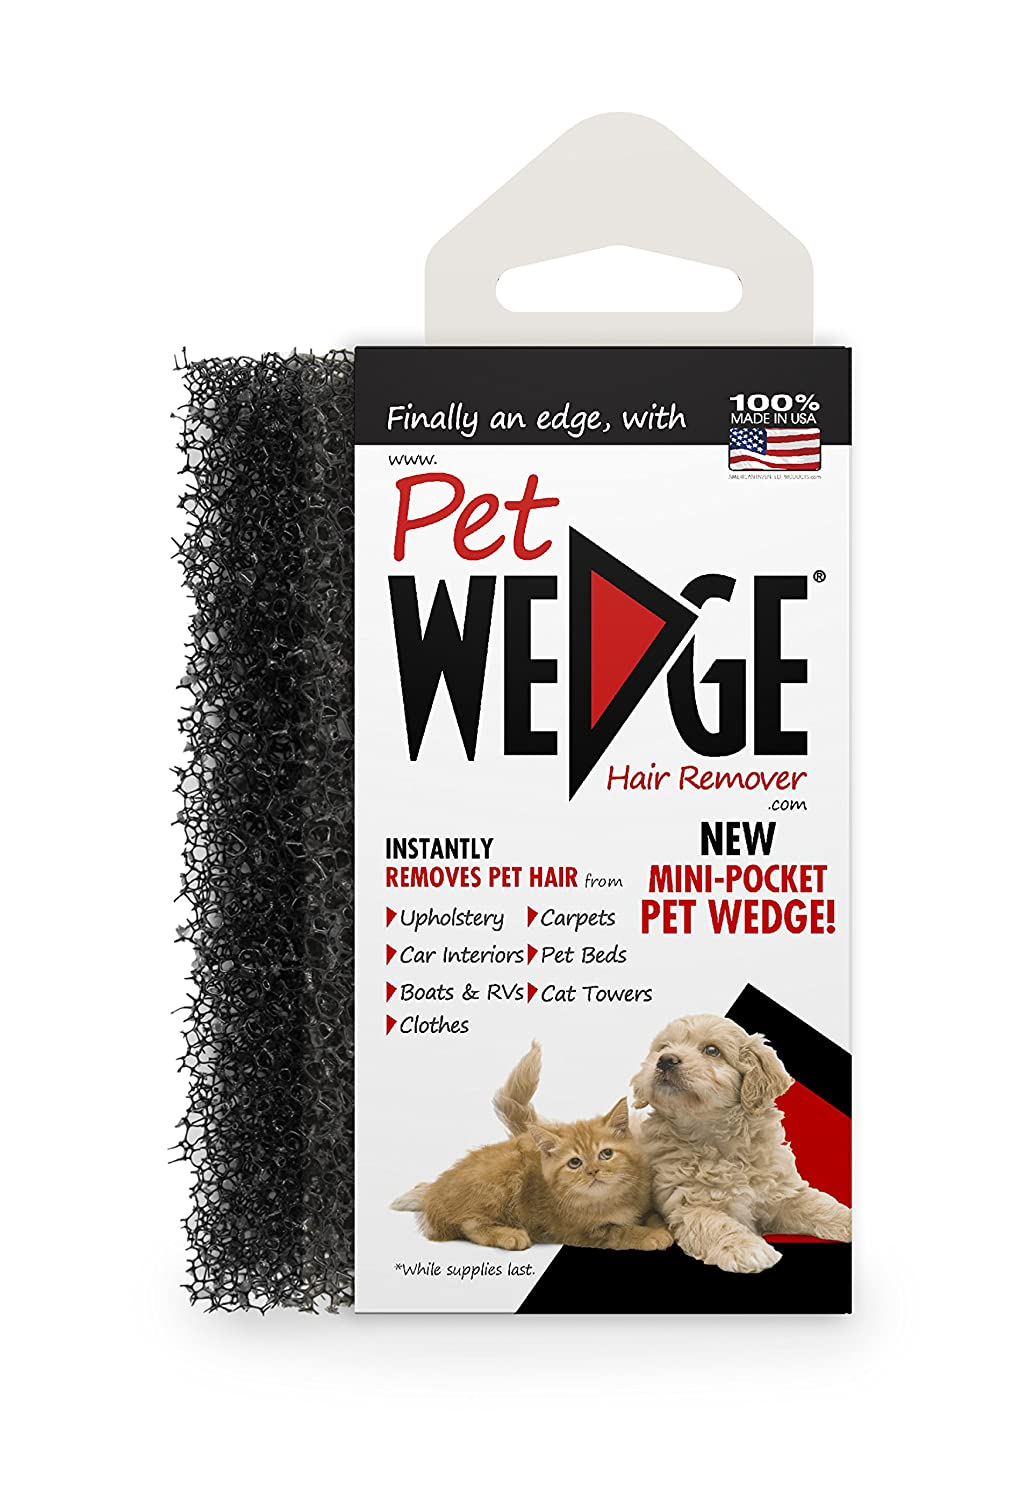 : Amazon.com: Pet Wedge Hair Remover- 2 Pack Pet Wedge & 2 Free Mini-Pocket Pet Wedge. Bonus Pack